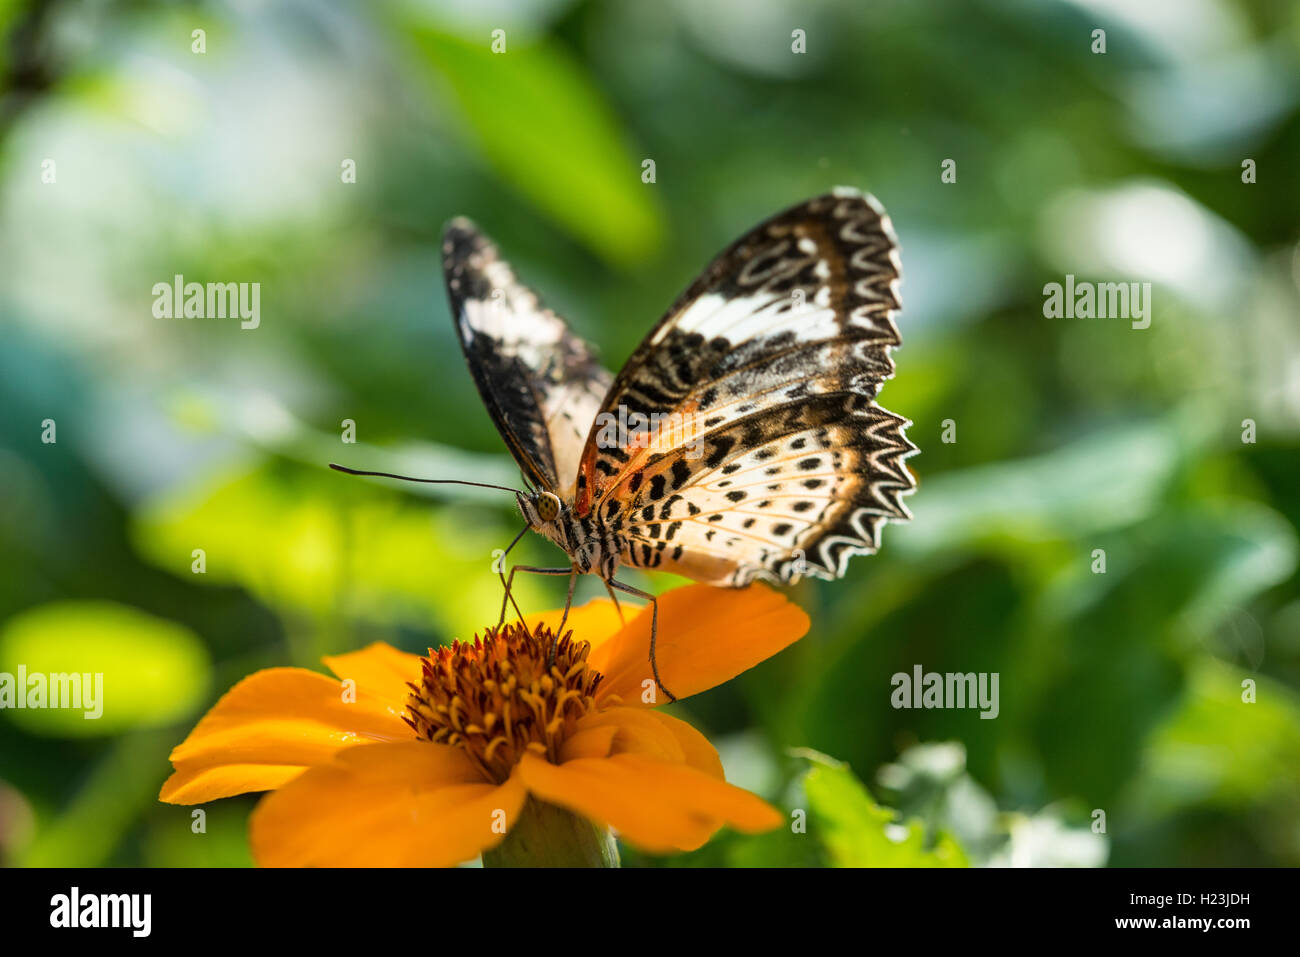 Brown or scarlet peacock (Anartia amathea) on flower, captive Stock Photo